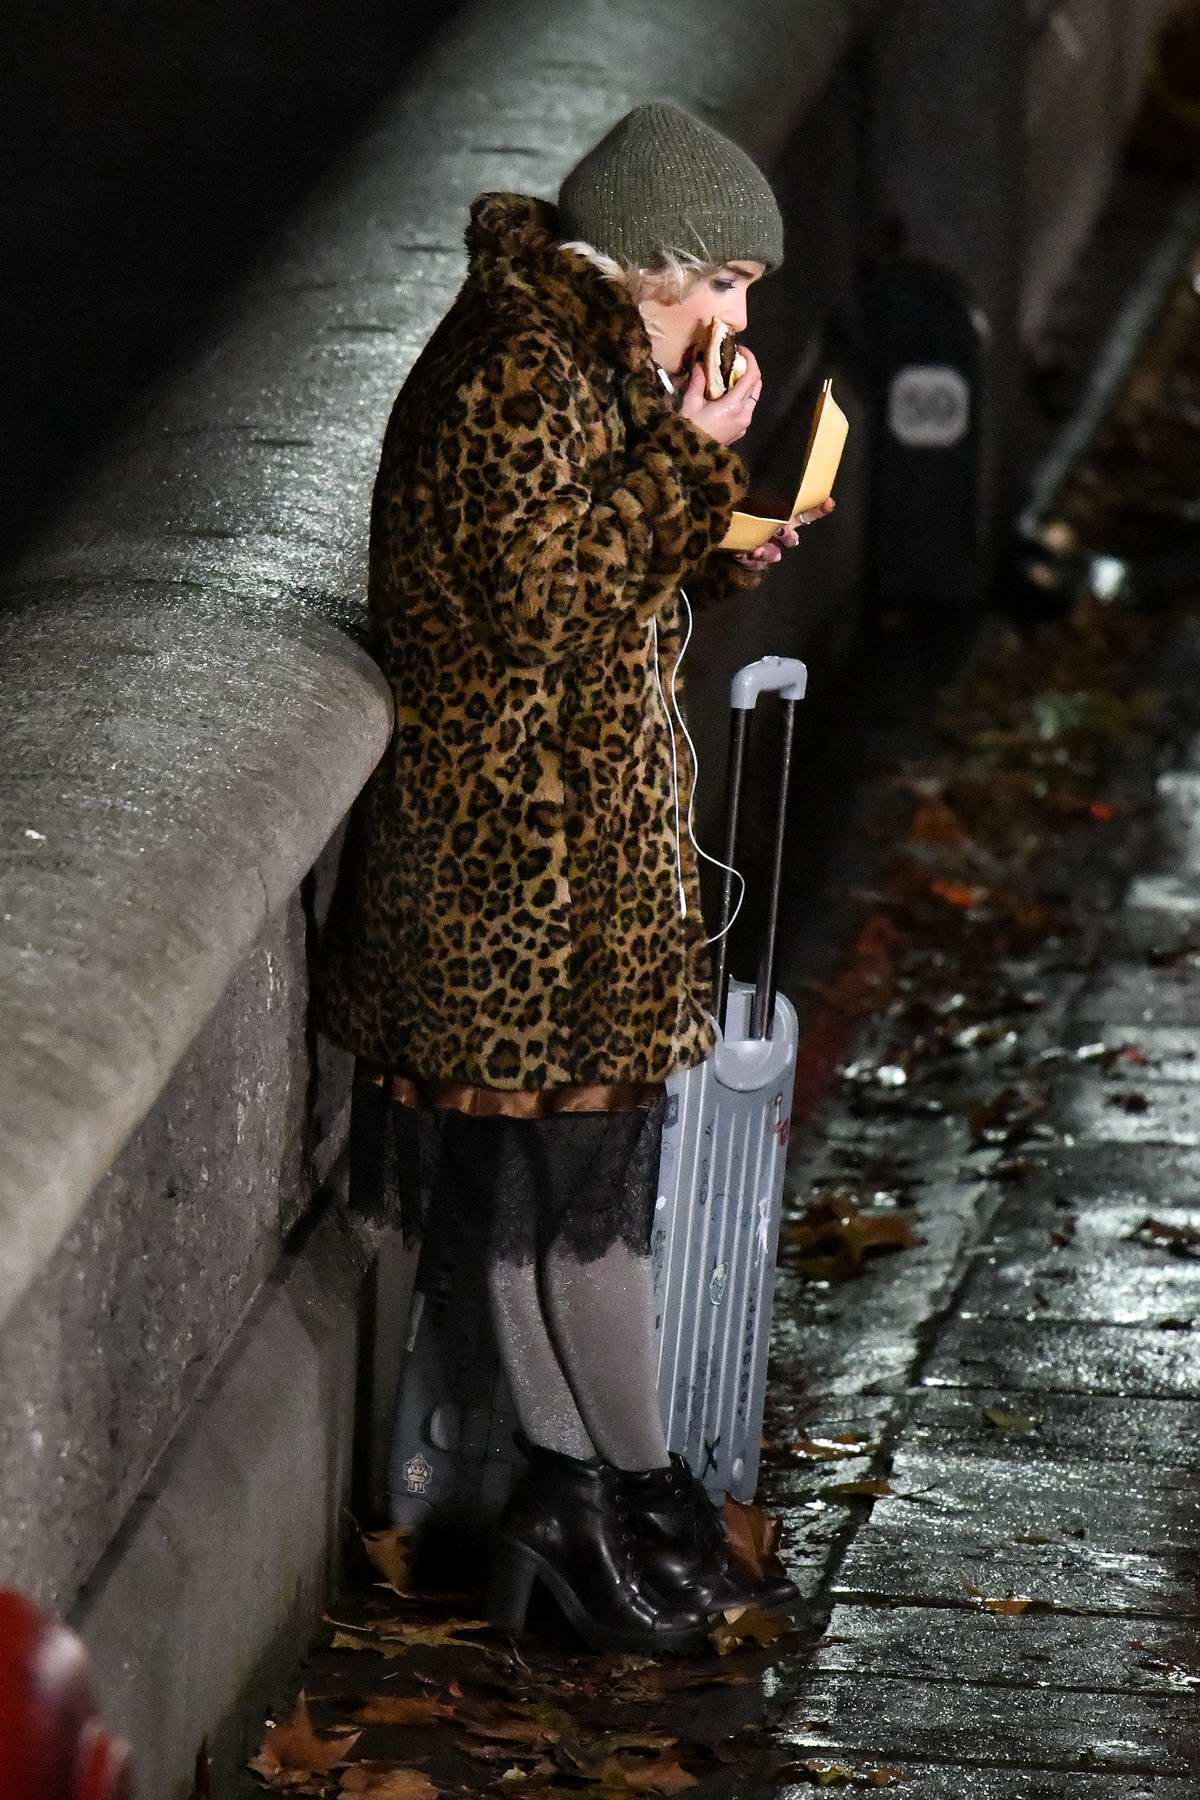 Emilia Clarke spotted in a leopard print fur coat with a suitcase while filming scenes for 'Last Christmas' in London, UK